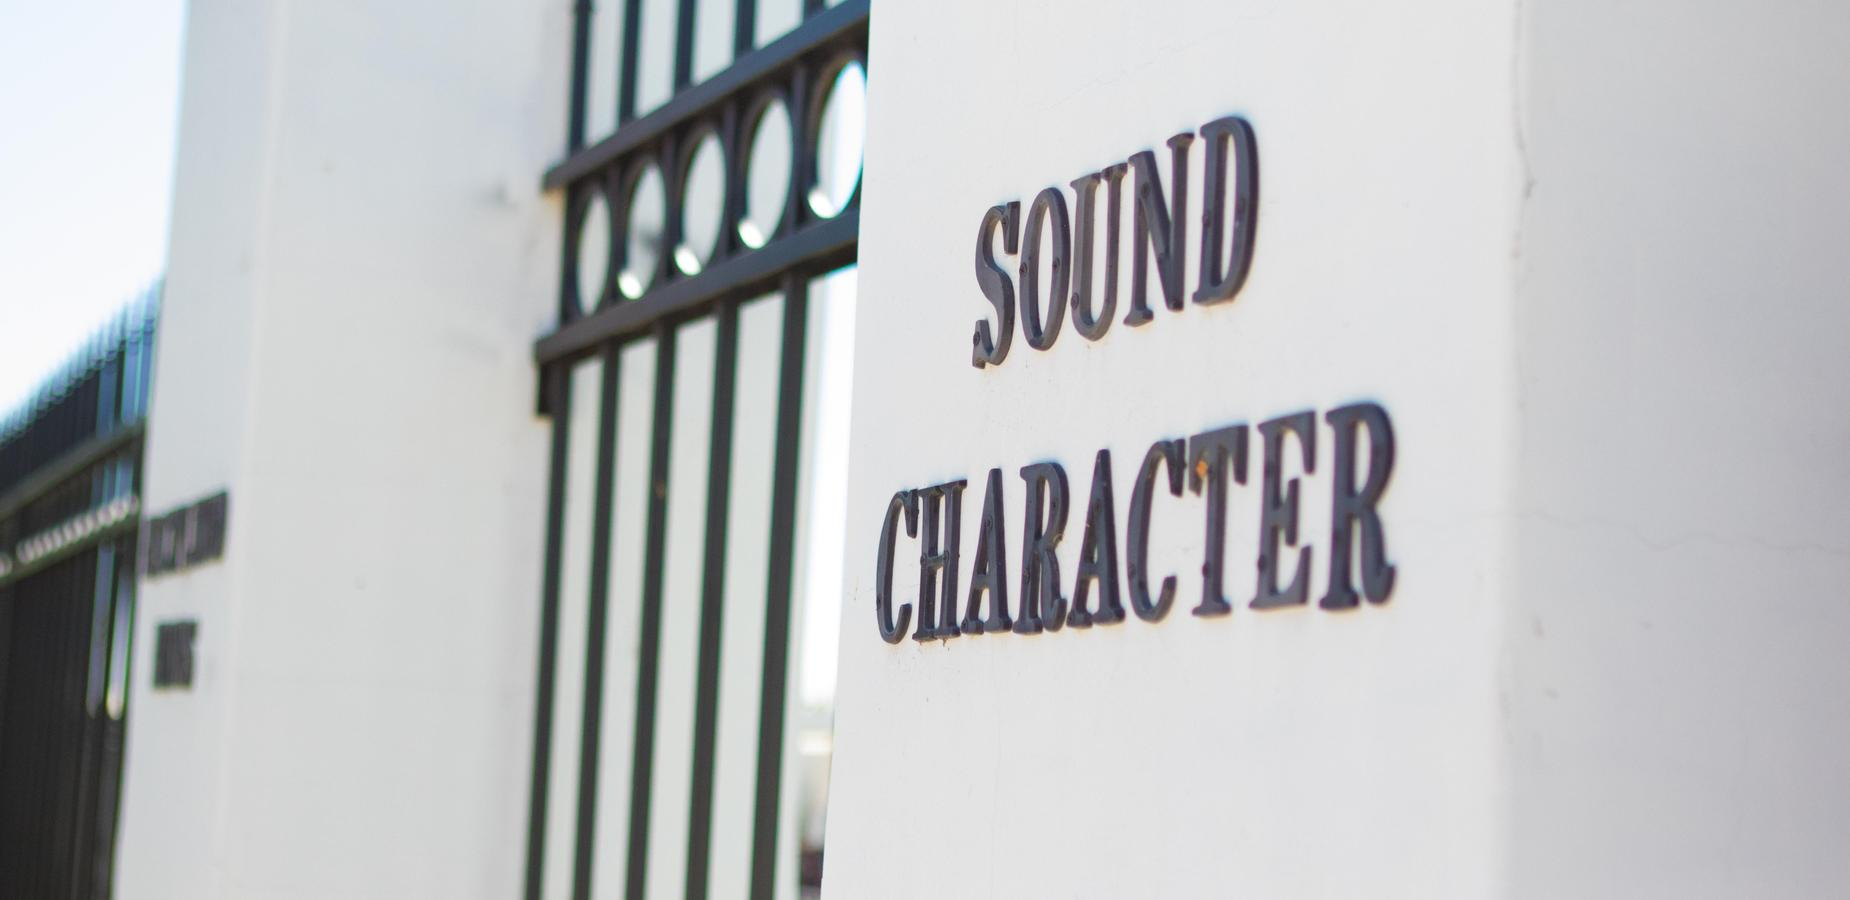 Sound Character - One of our core